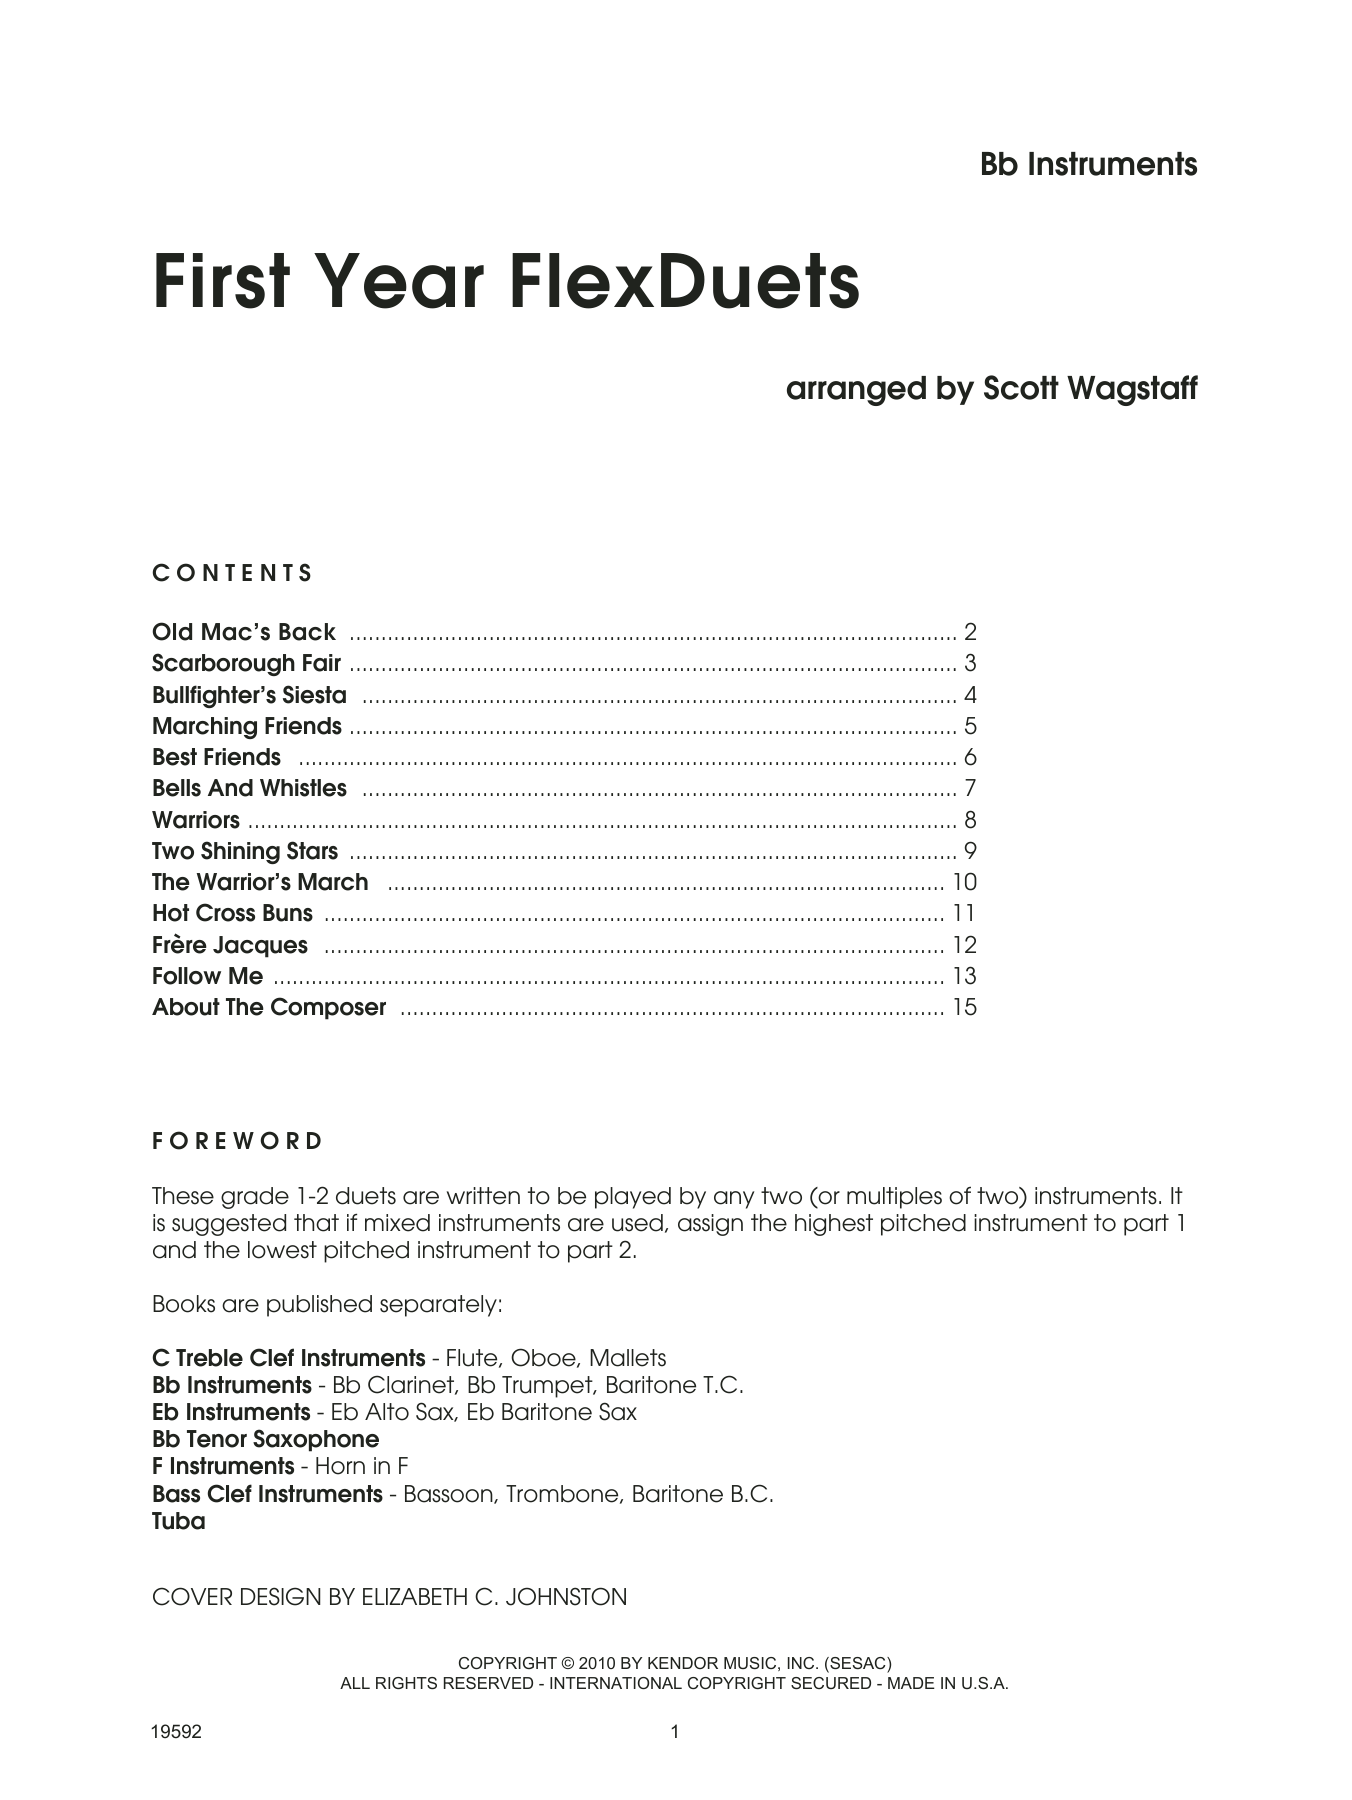 First Year FlexDuets - Bb Instruments Sheet Music